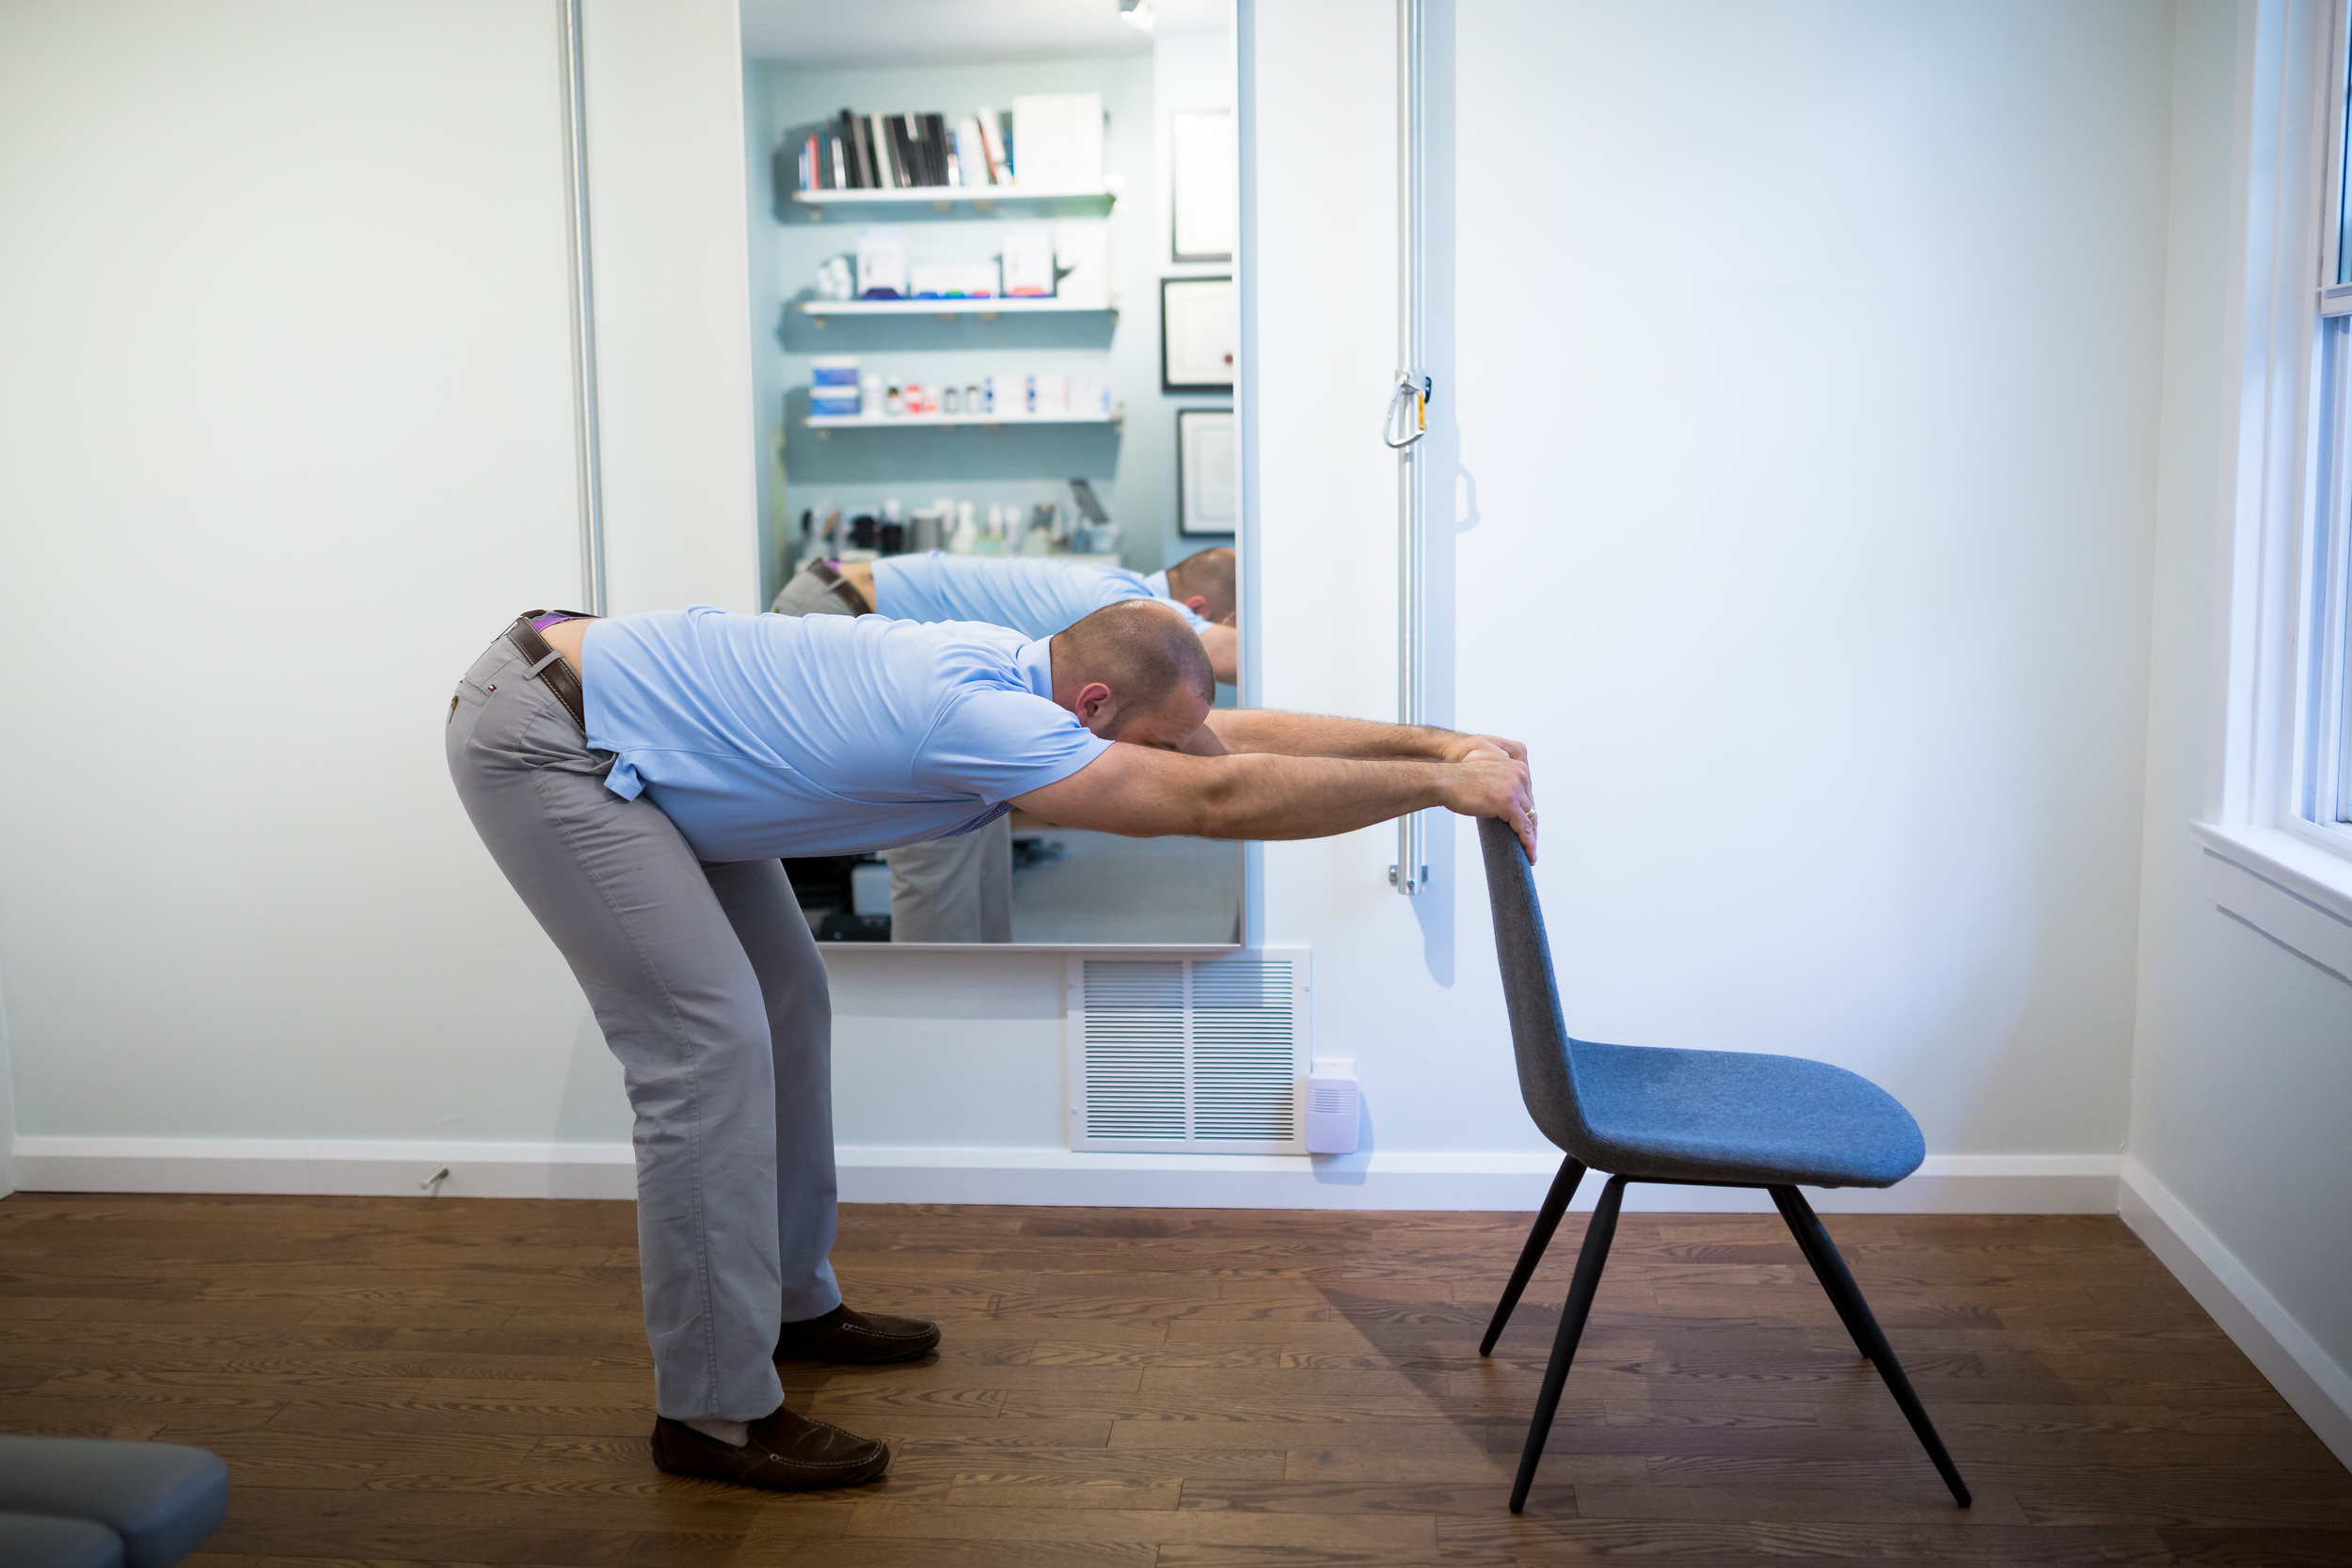 STEP 4:  As you take a deep breath in, push your chest and belly towards the floor. Rest here for a moment and then return to Step 3. Repeat for a few minutes.